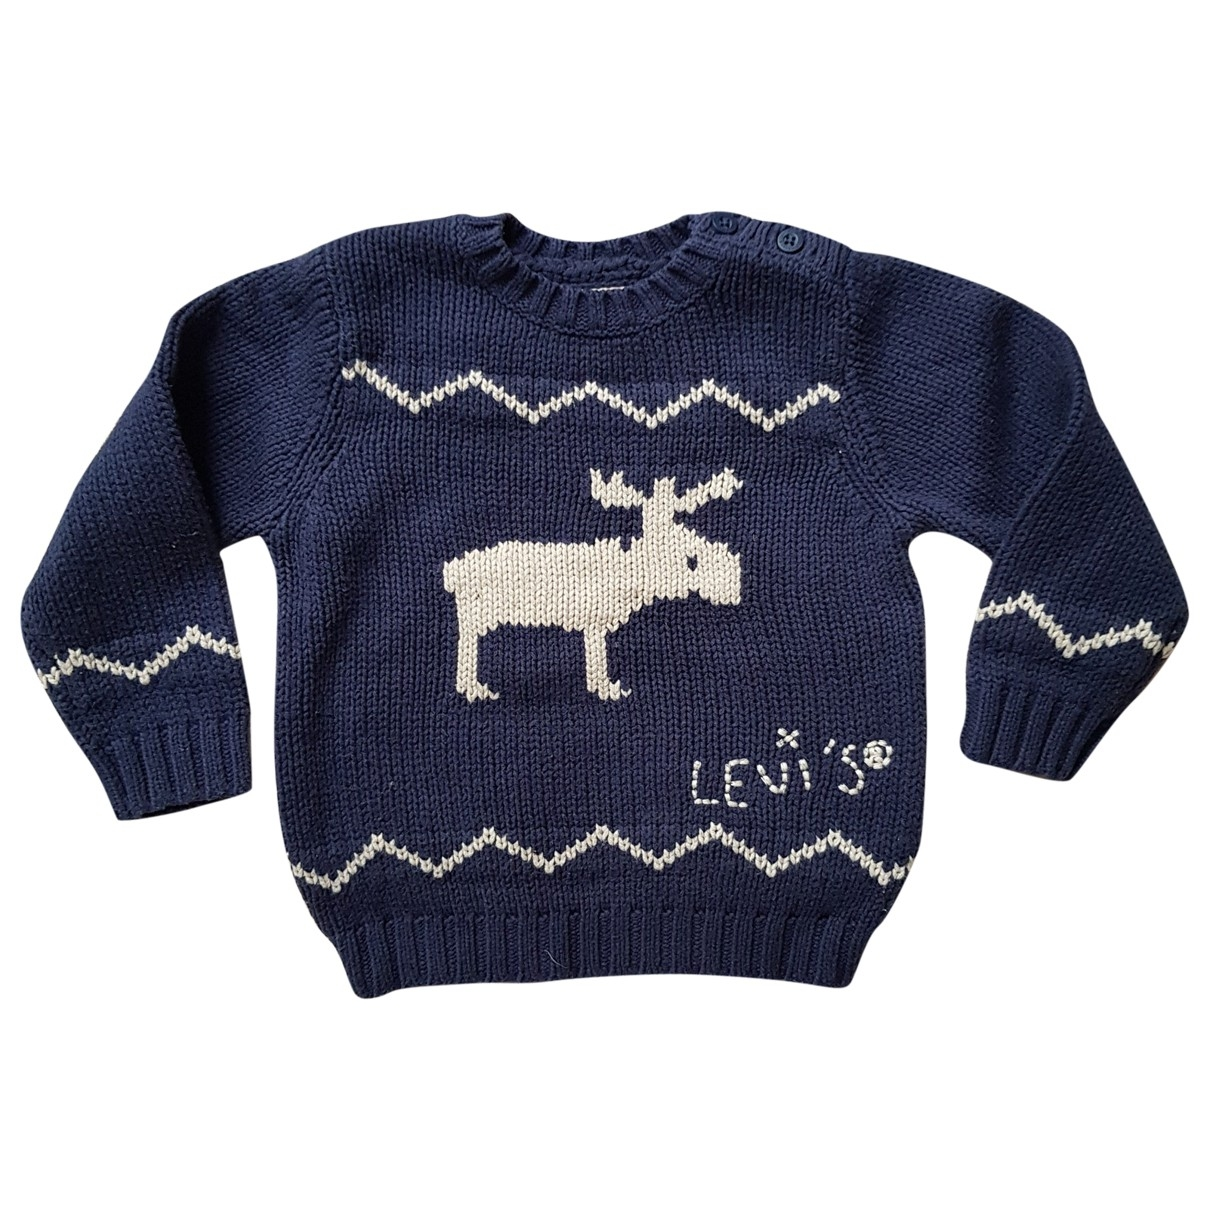 Levi's \N Blue Cotton Knitwear for Kids 2 years - up to 86cm FR